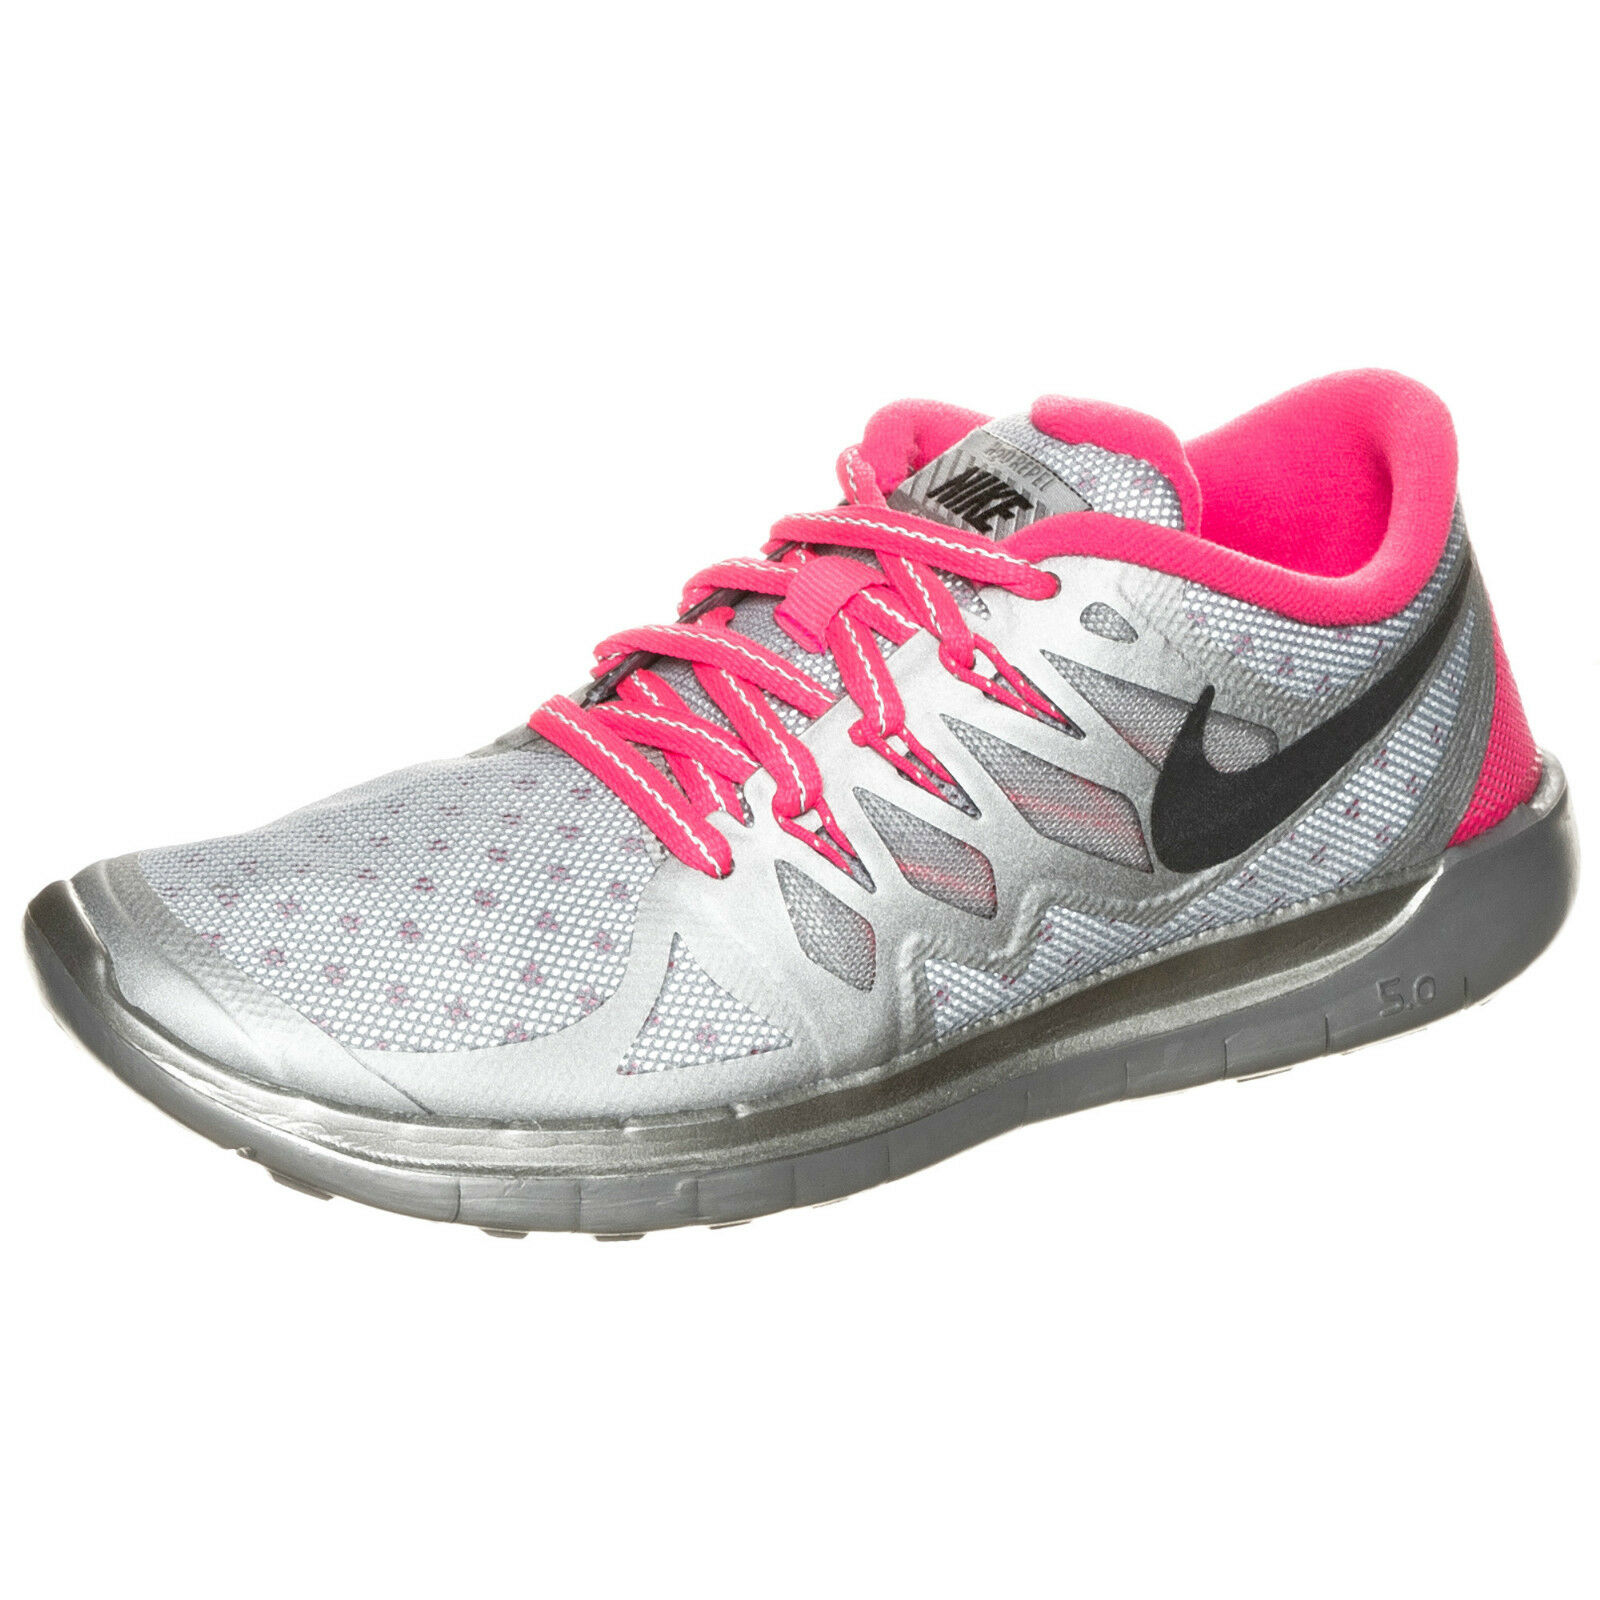 WMNS Nike Free 5.5 Run 5.0 Flash SZ 5.5 Free Reflect SIlver Hyper Pink GS 4Y 685712-001 07821d